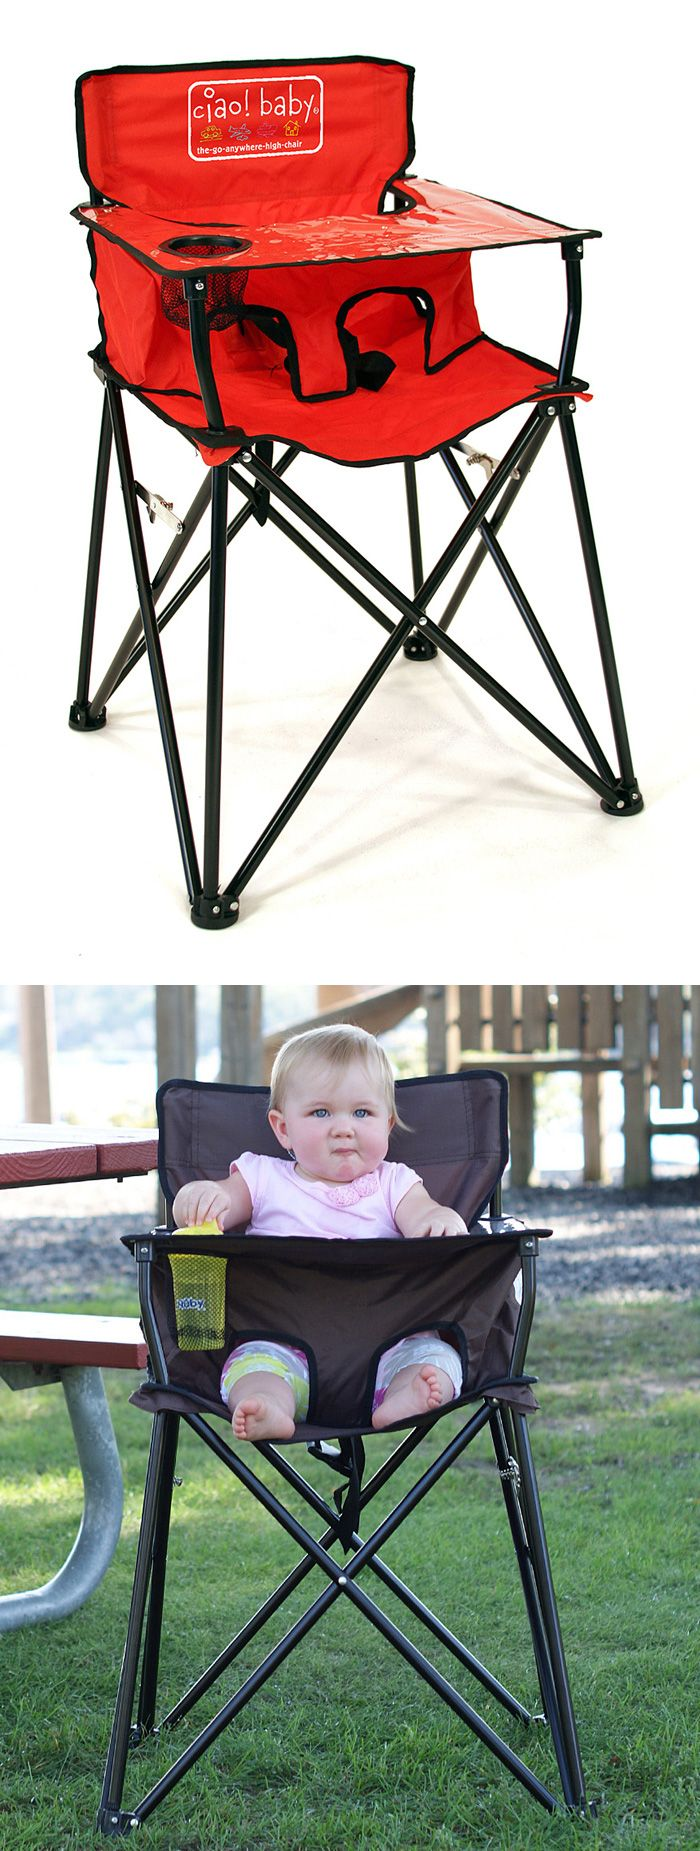 Baby Portable Travel High Chair. Genius.